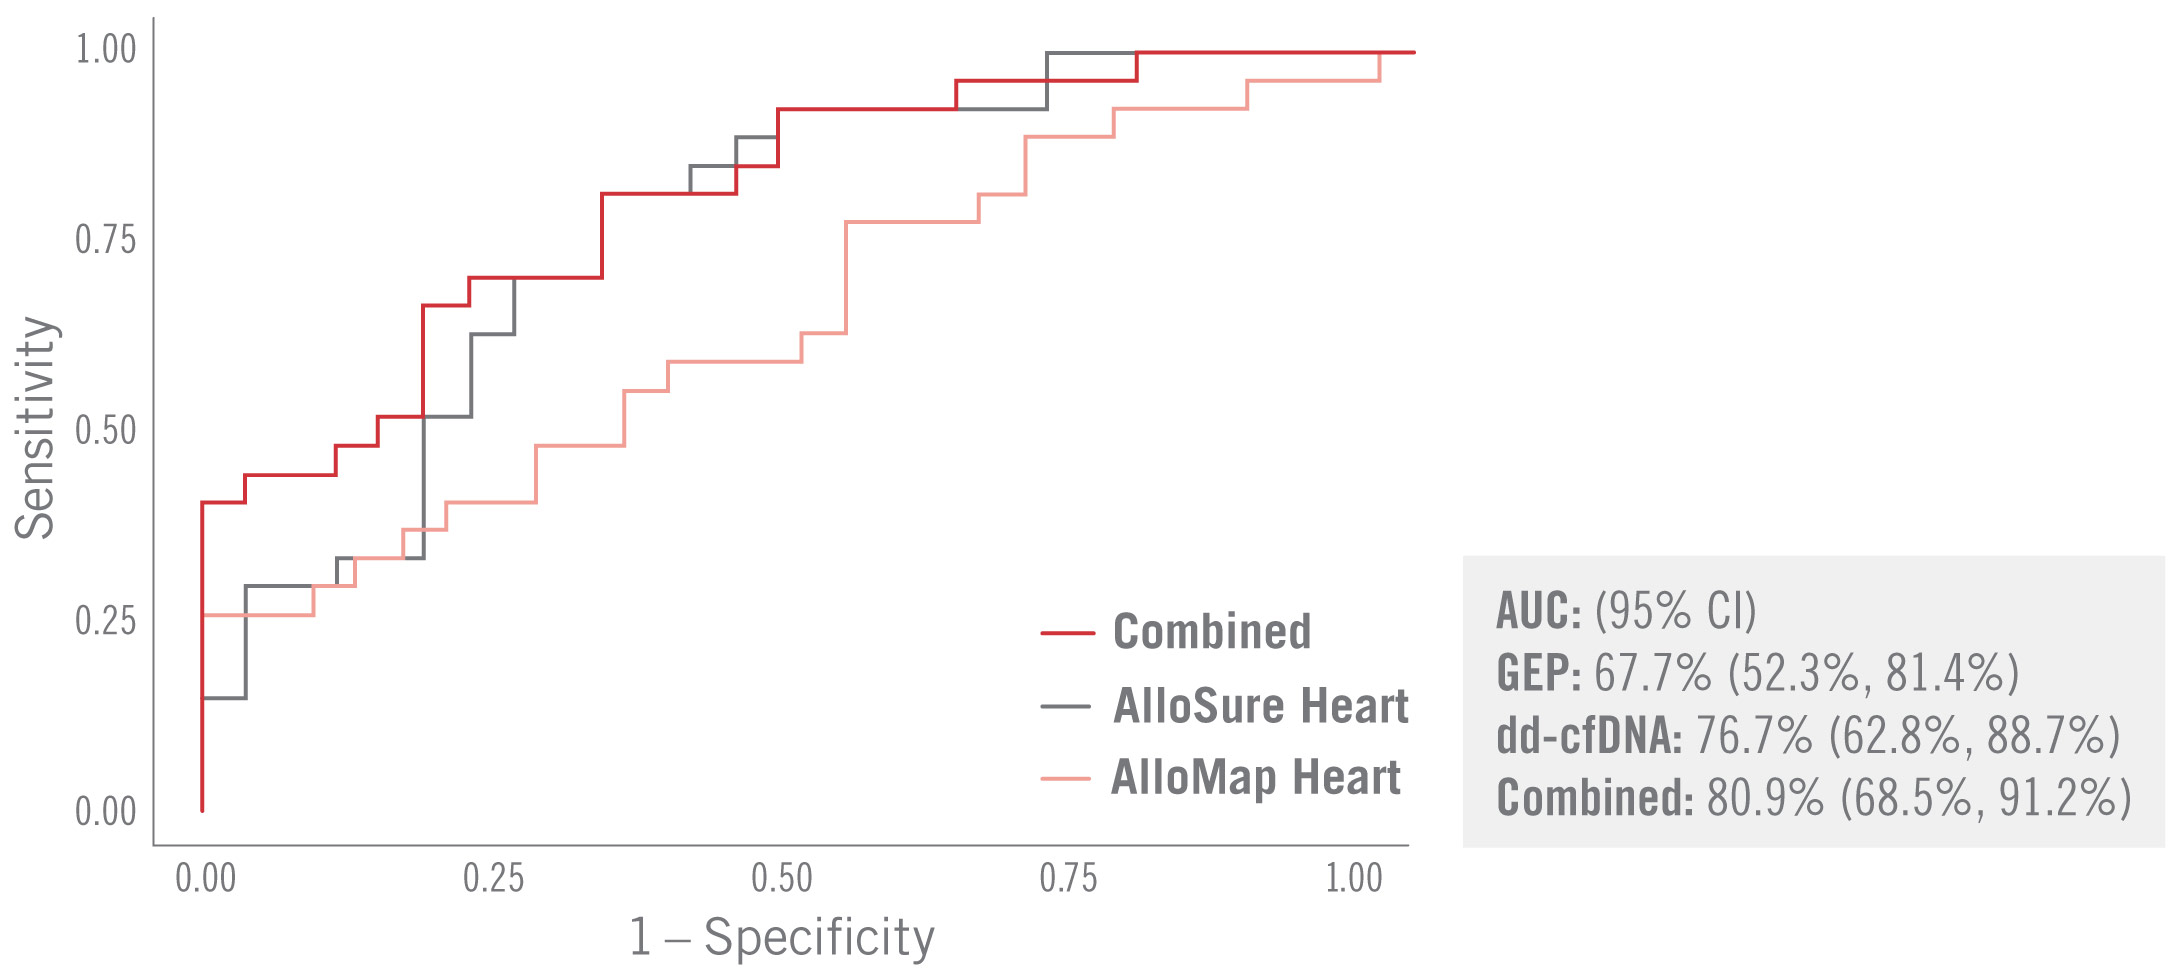 The vertical axis displays sensitivity from zero to one. The horizontal axis displays specificity from zero to one. The results for AlloSure Heart, AlloMap Heart, and combined rise respectively from left to right. AUC represents ninety-five percent CI. GEP represents sixty-seven-point-seven percent. dd-cfDNA represents seventy-six-point-seven percent. Combined represents eighty-point-nine percent. The combination of AlloMap Heart and AlloSure Heart has a greater AUC than either test on its own.